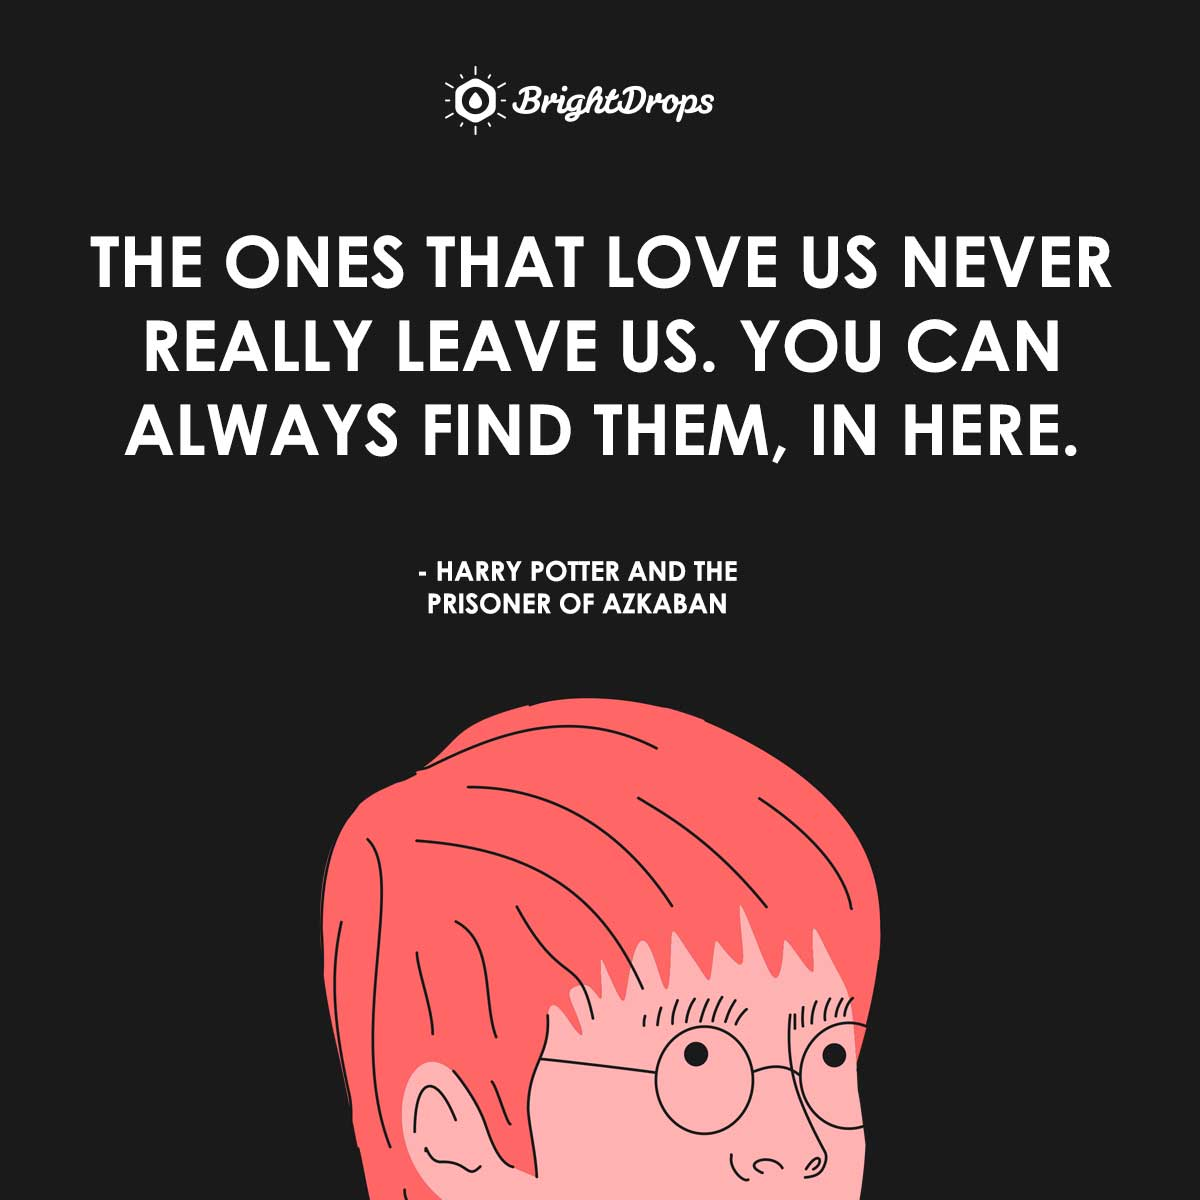 The ones that love us never really leave us. You can always find them, in here. - Harry Potter and the Prisoner of Azkaban